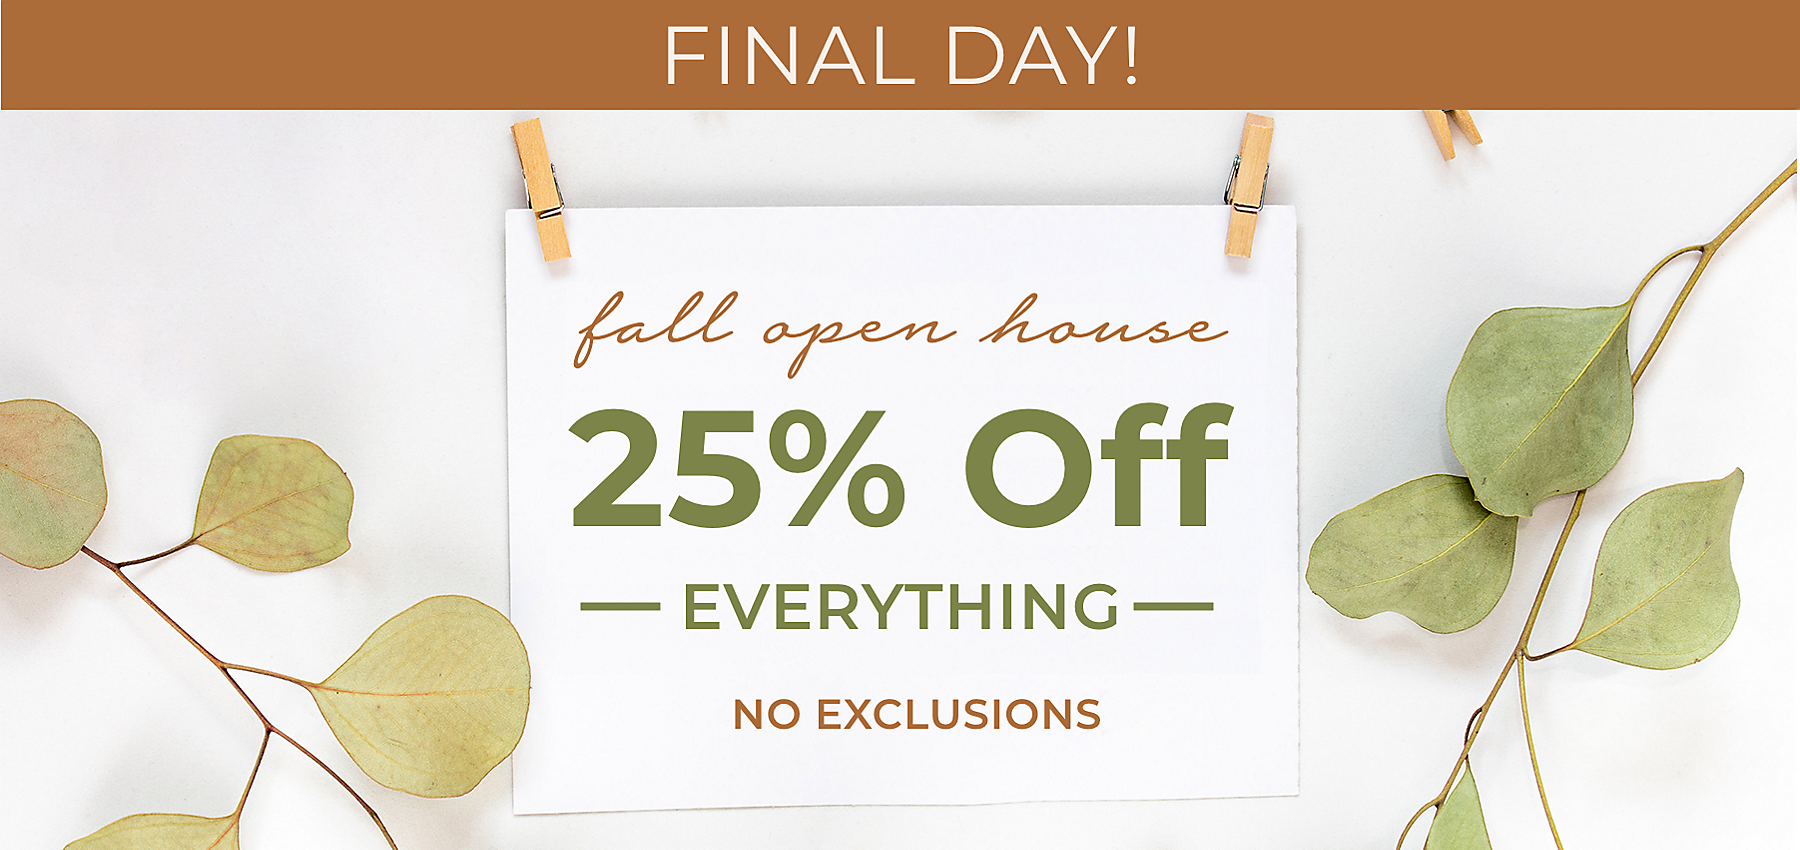 Final Day! Fall Open House Sale